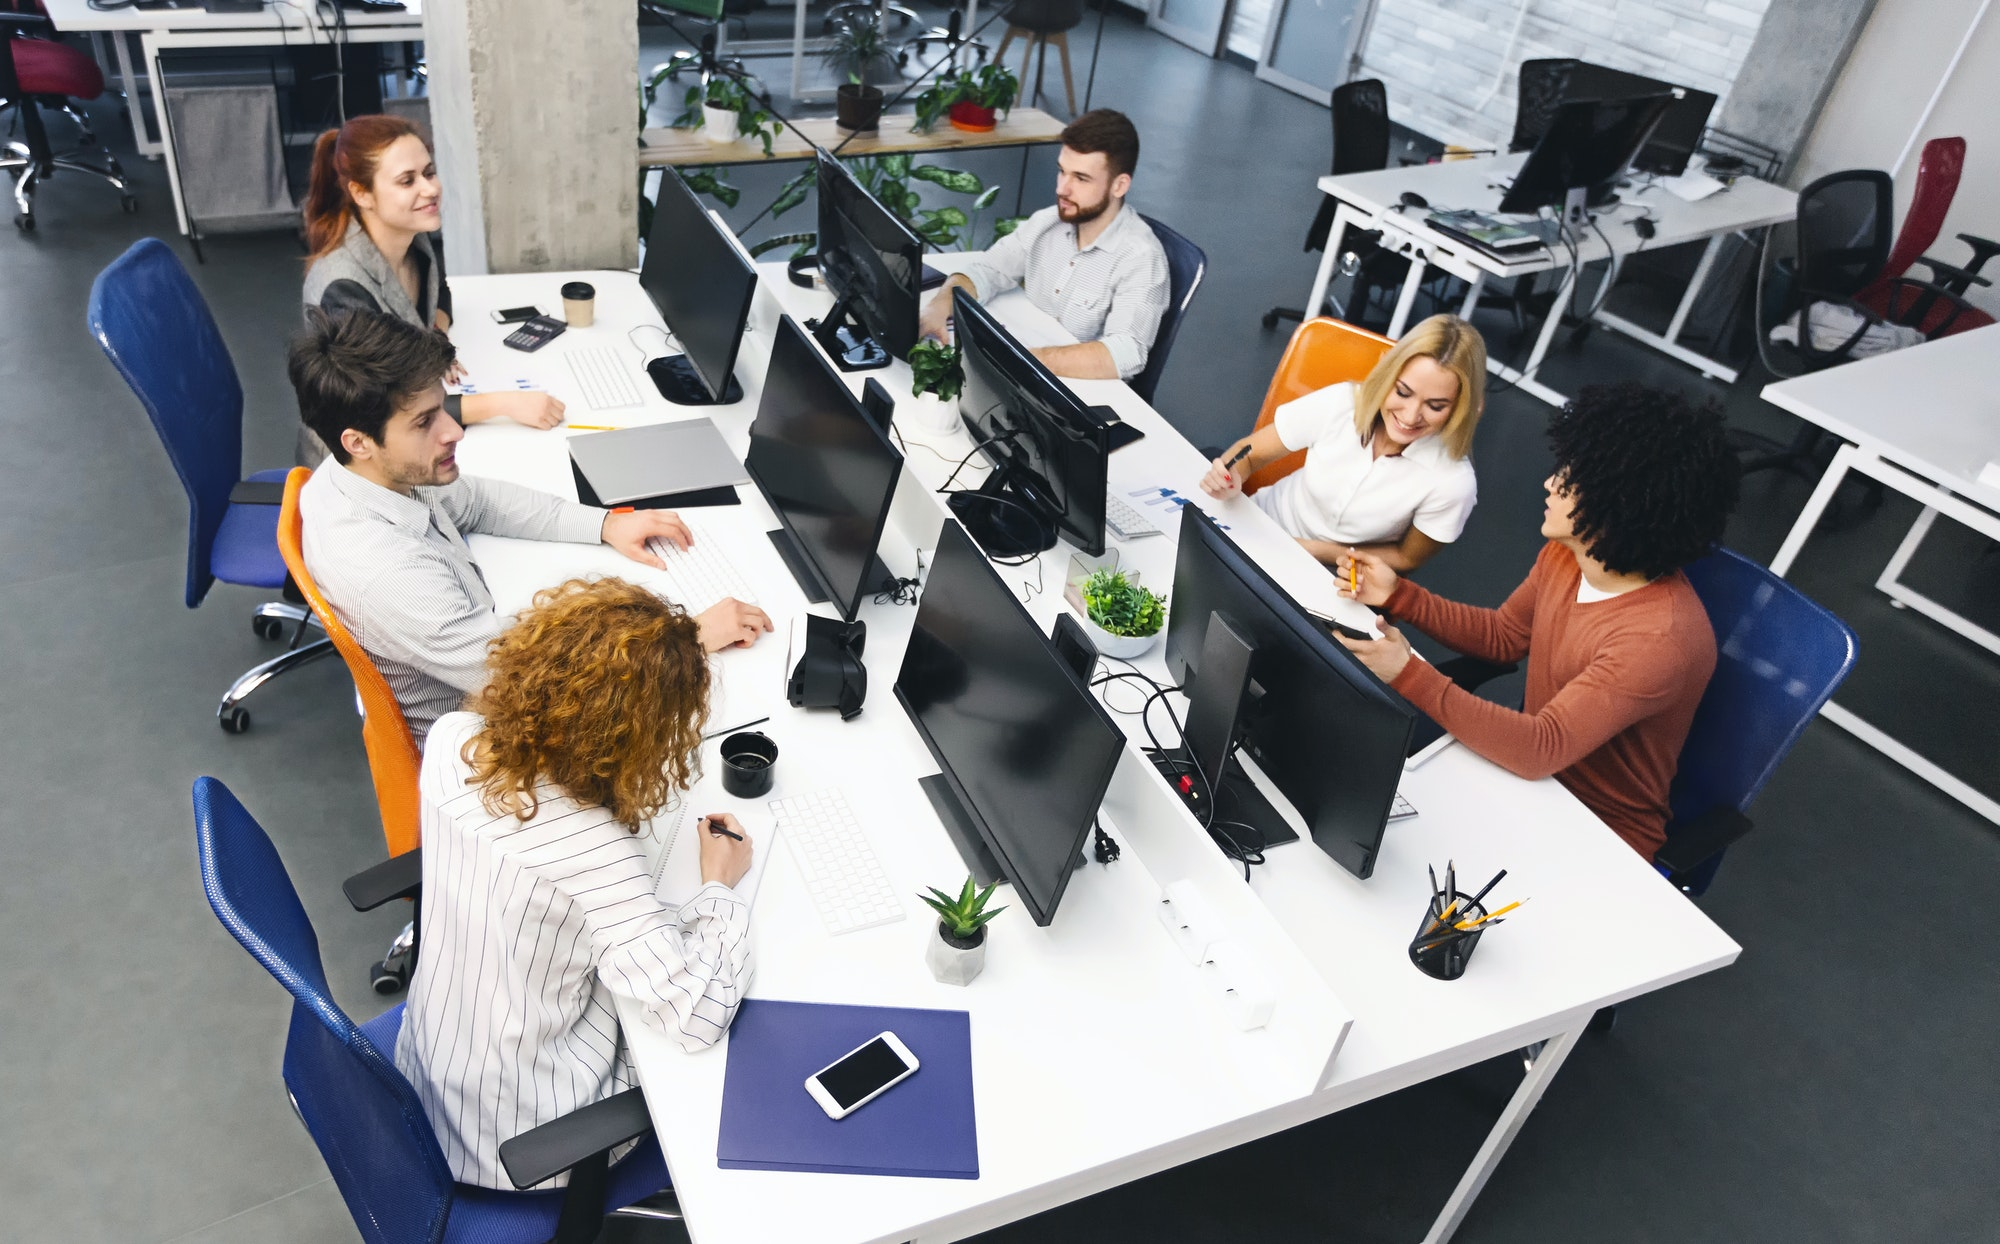 Group of young diverse people discussing project at workplace